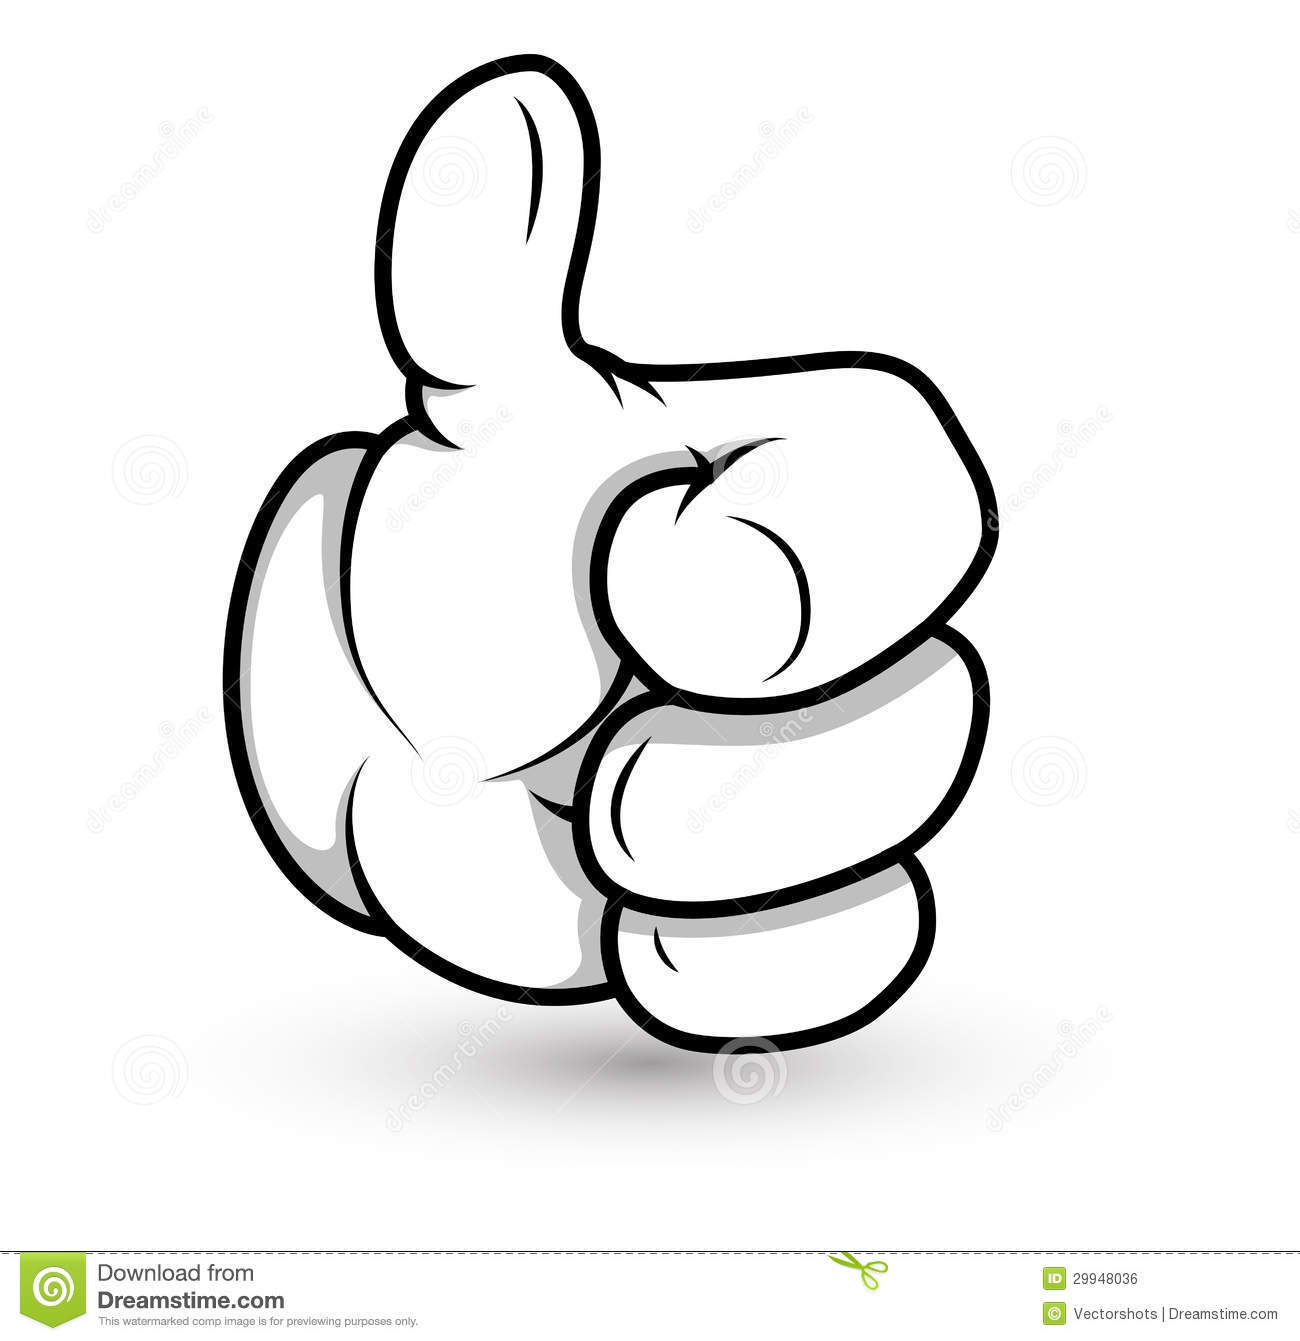 Conceptual Drawing Art of Cartoon Hand Gesture Vector IllustrationCartoon Hand Pointing Up